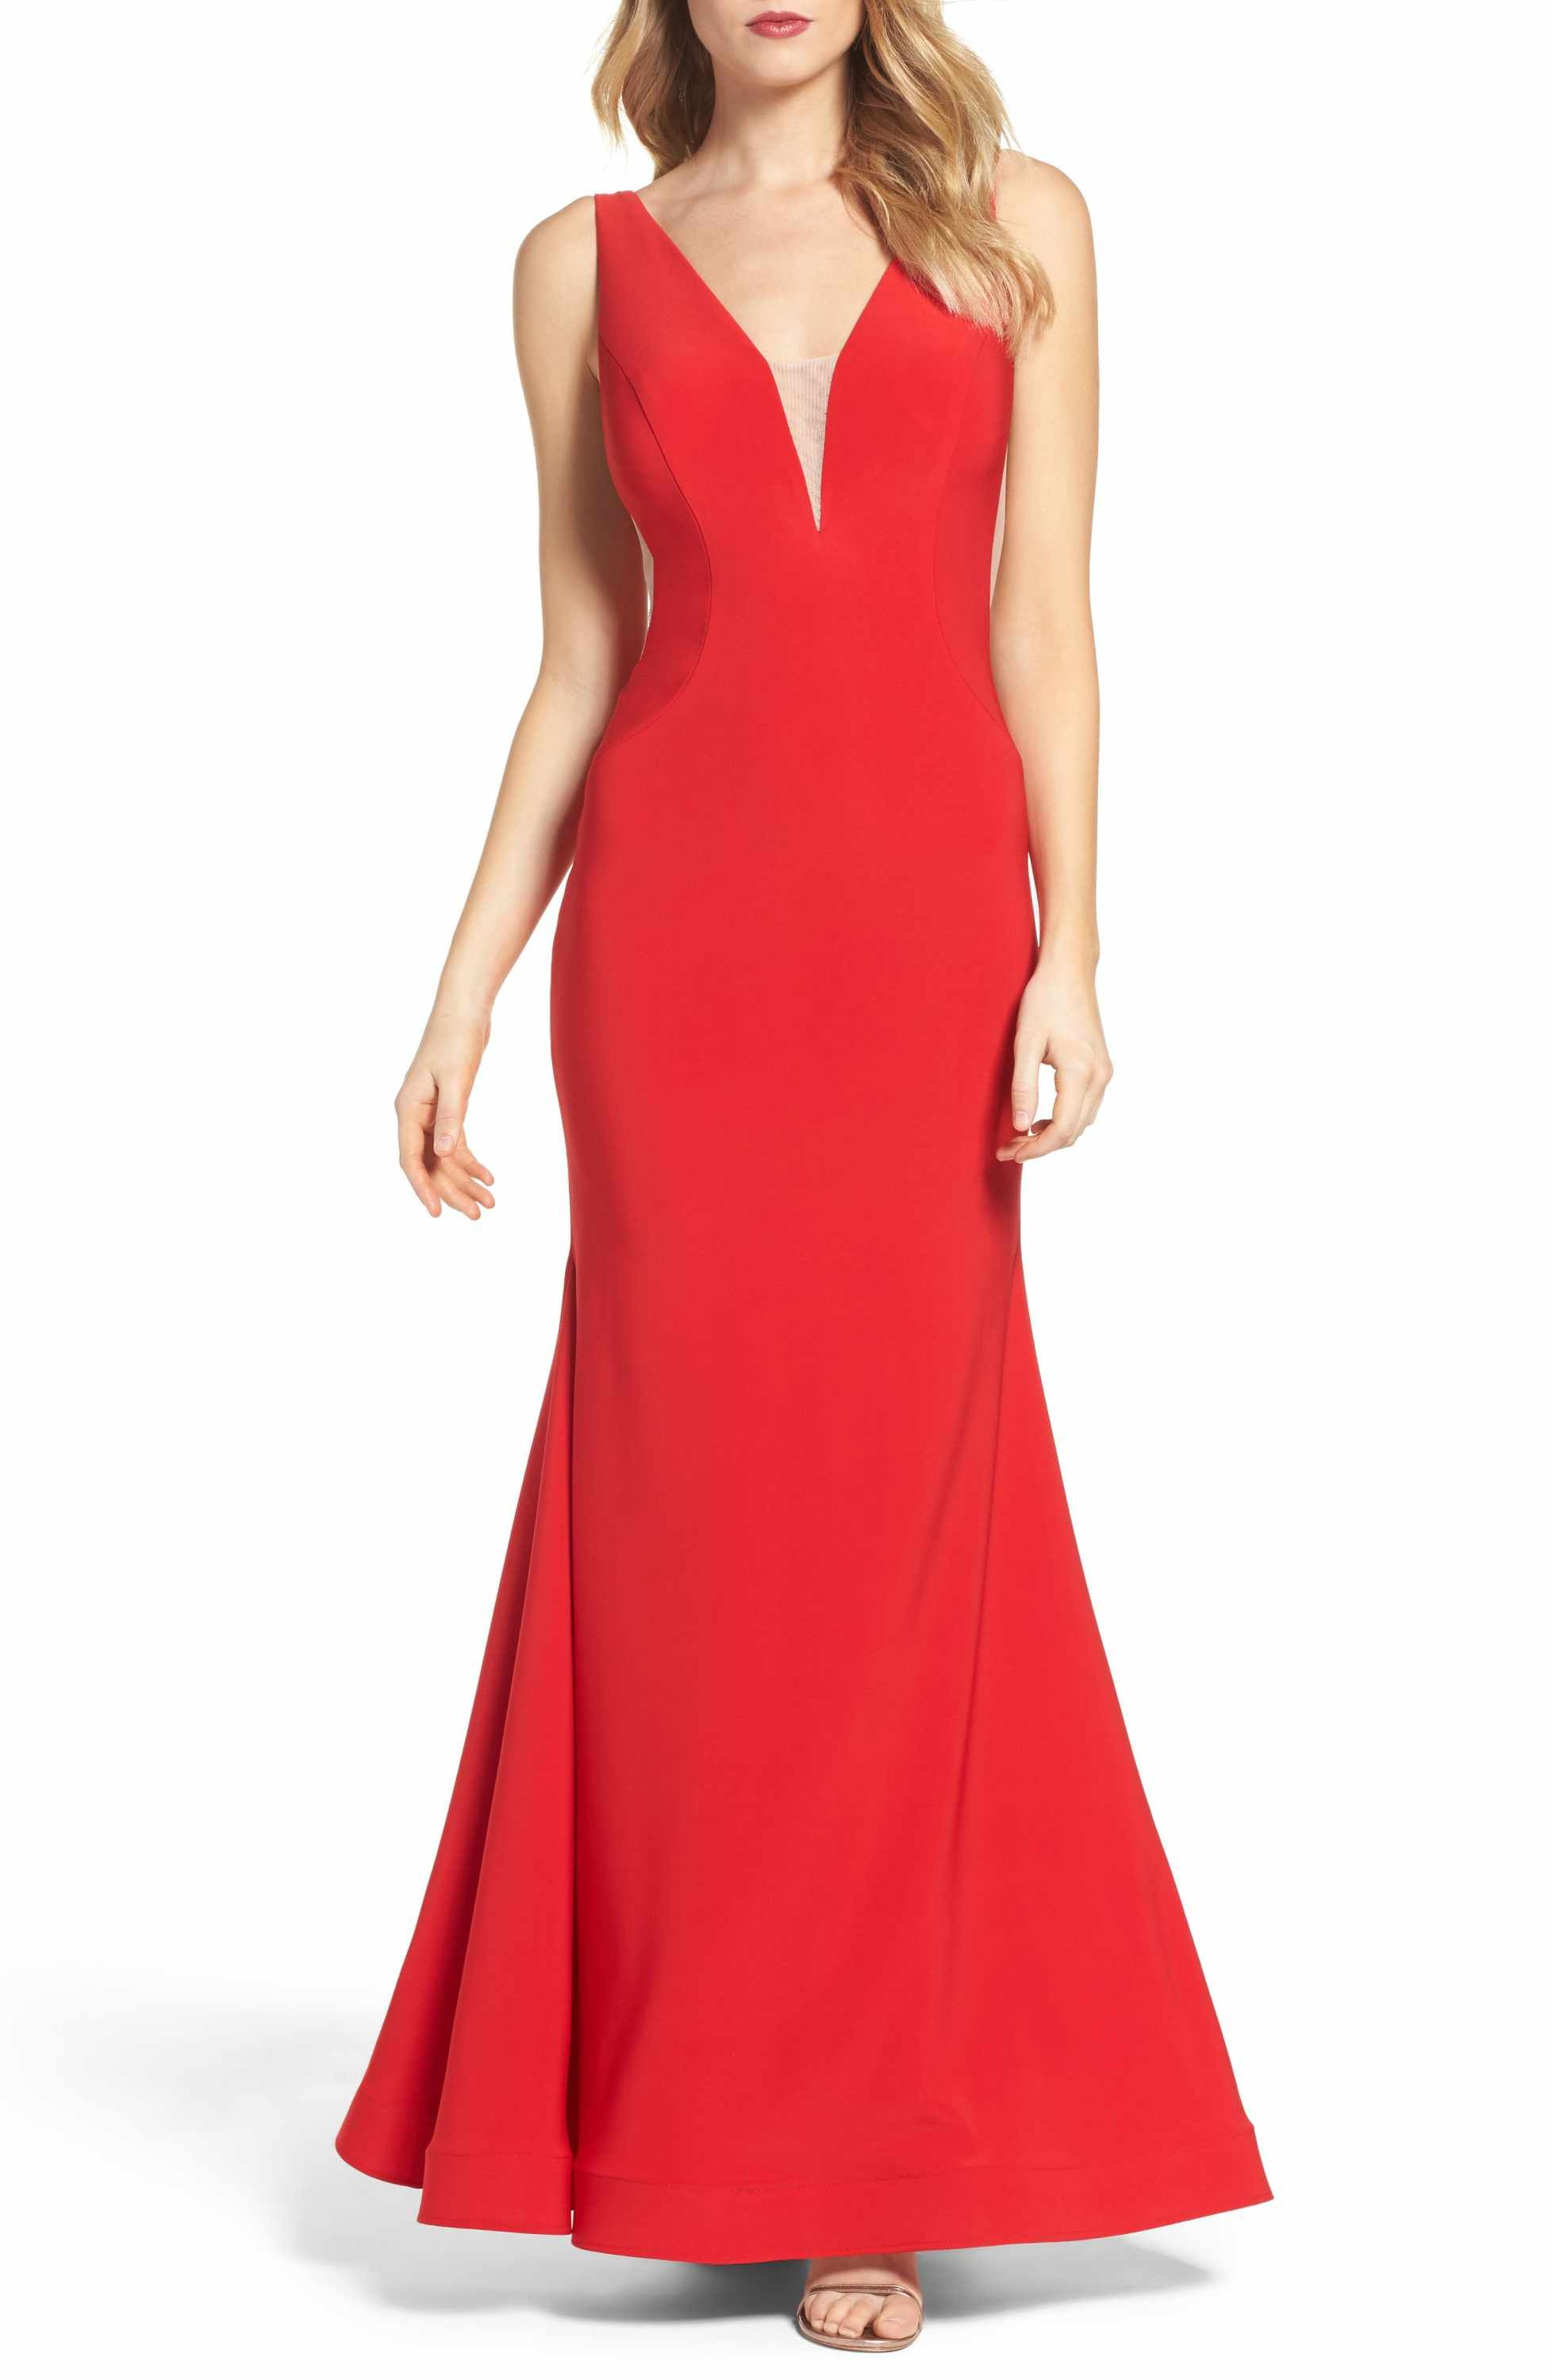 Xscape Mermaid Gown Nordstrom Beautiful Red Dresses Red Dress Maxi Red Mermaid Dress [ 3000 x 1956 Pixel ]